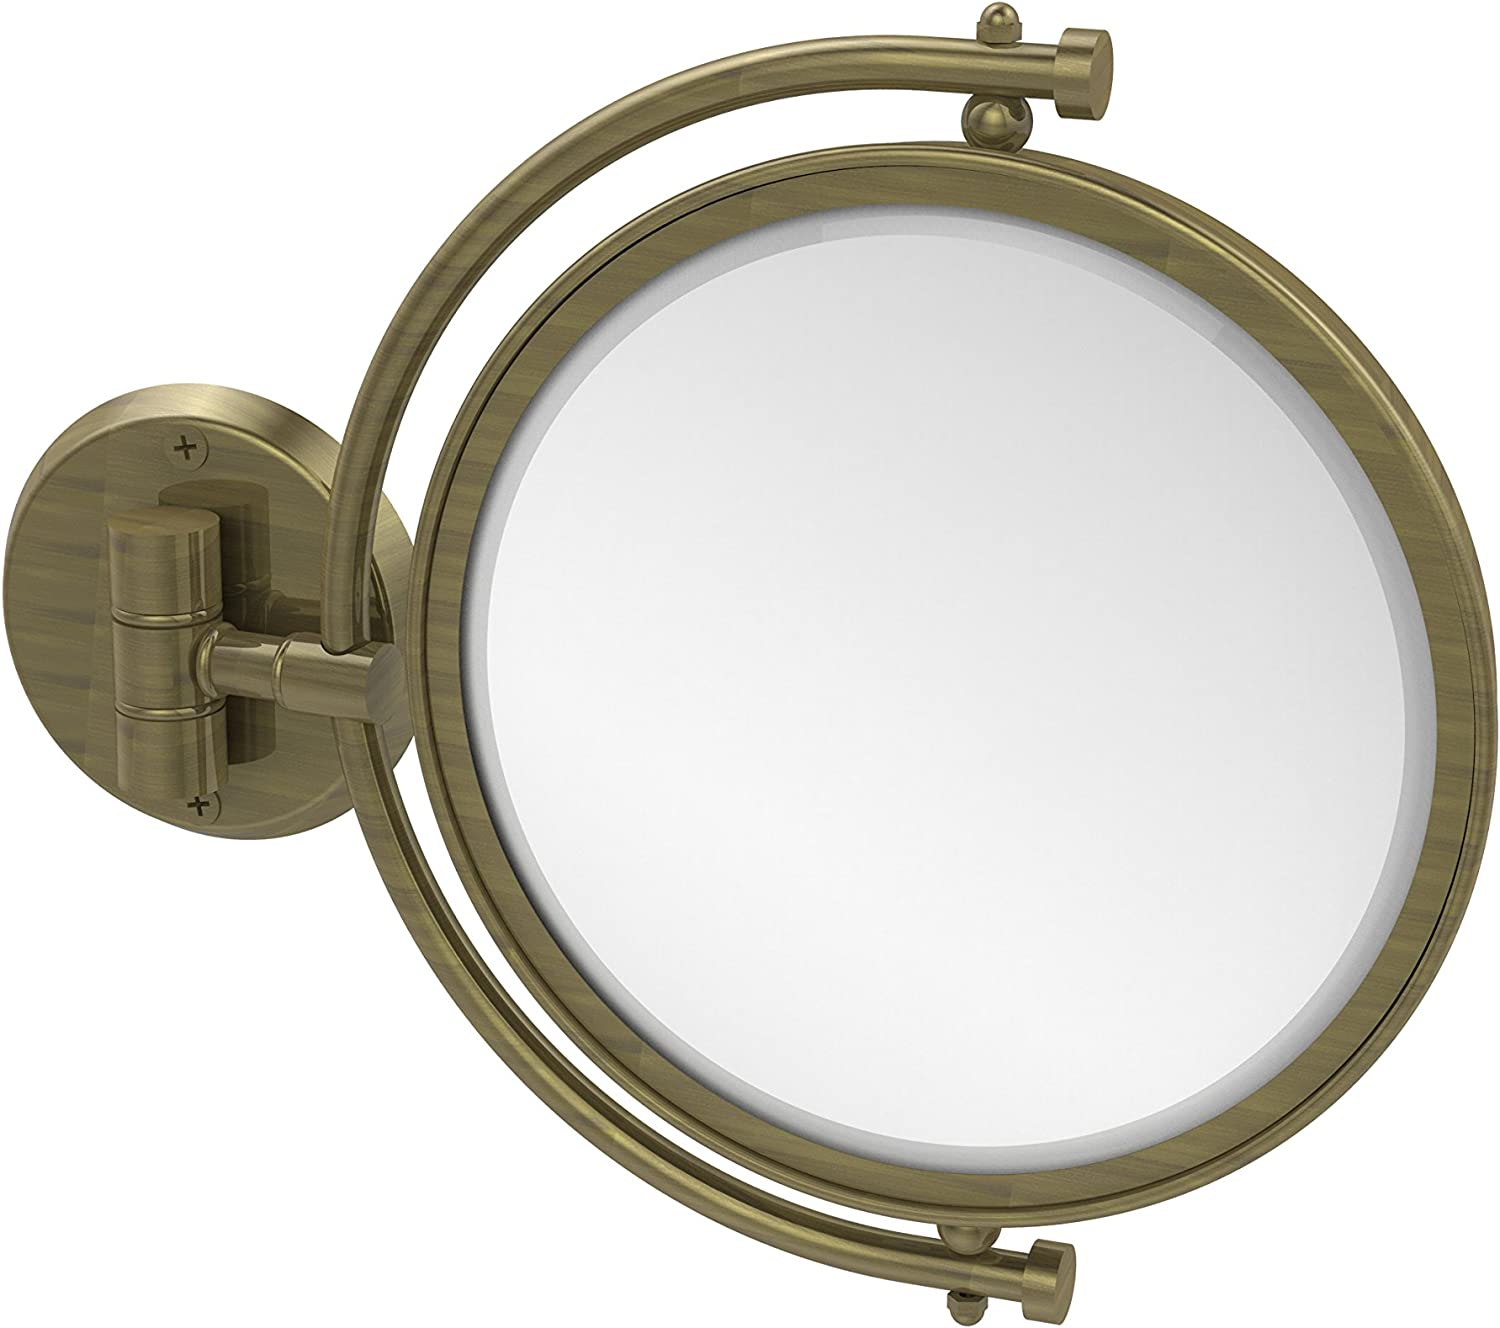 Allied Brass WM-4 2X-ABR 8-Inch Mirror with 2X Magnification Extends 7-Inch, Antique Brass